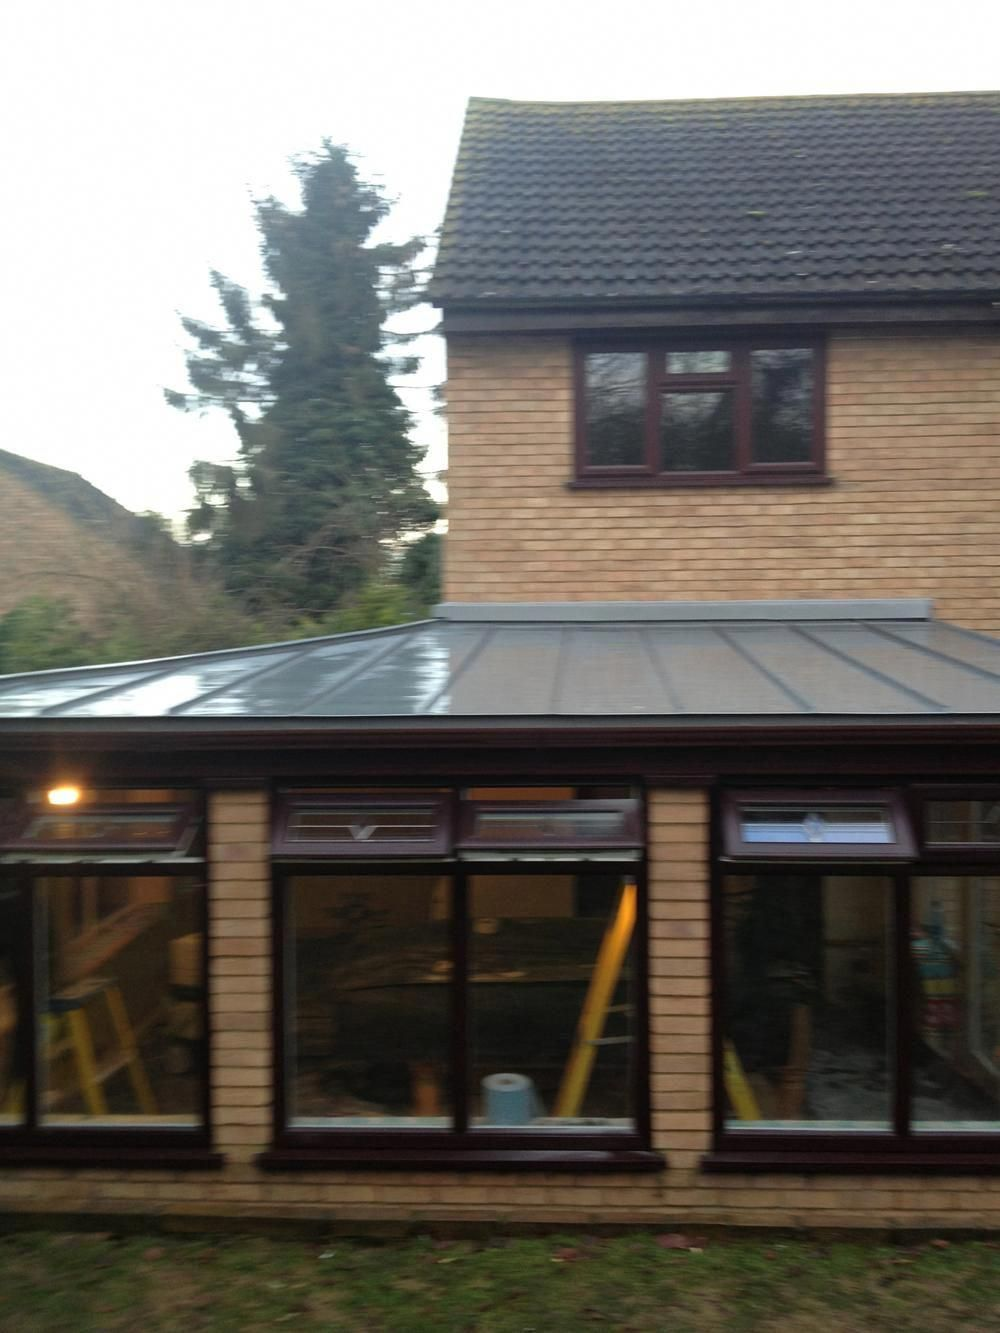 Conservatory Polycarbonate Roof Replaced Using Vm Zinc And Insulation Giving A Replaceyourroofing Roof Styles Zinc Roof Roofing